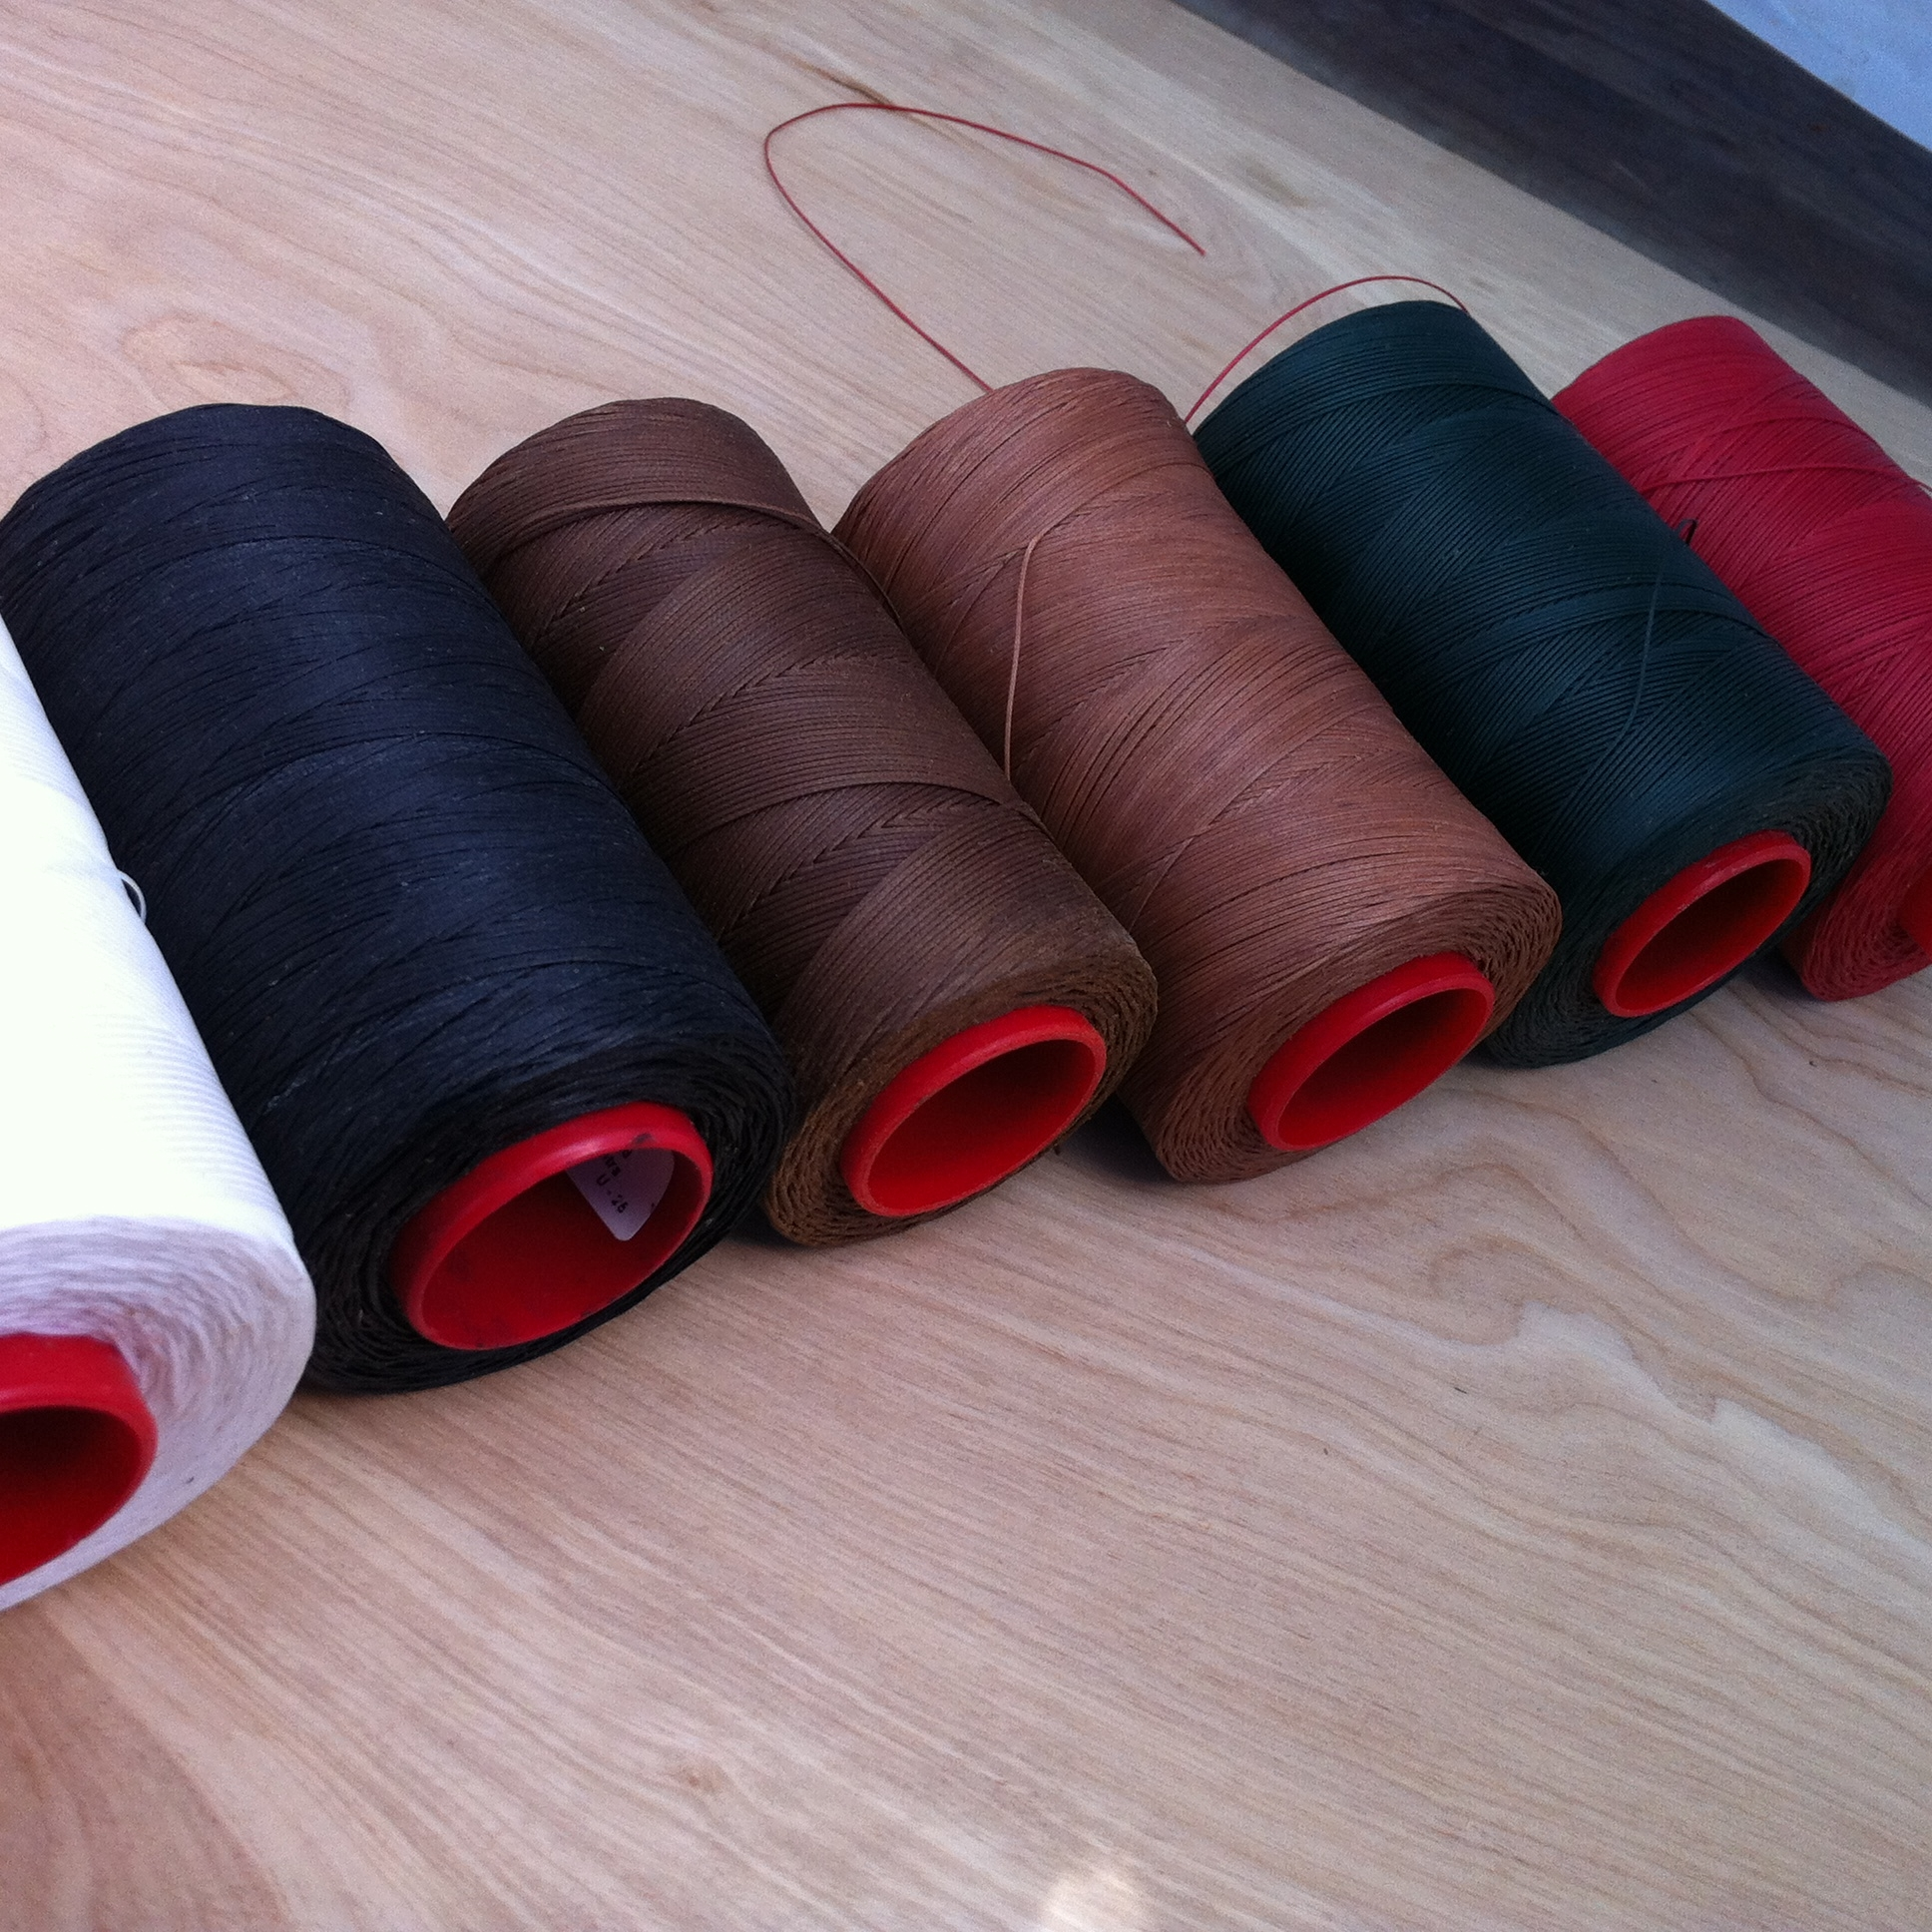 Saddle stitching thread